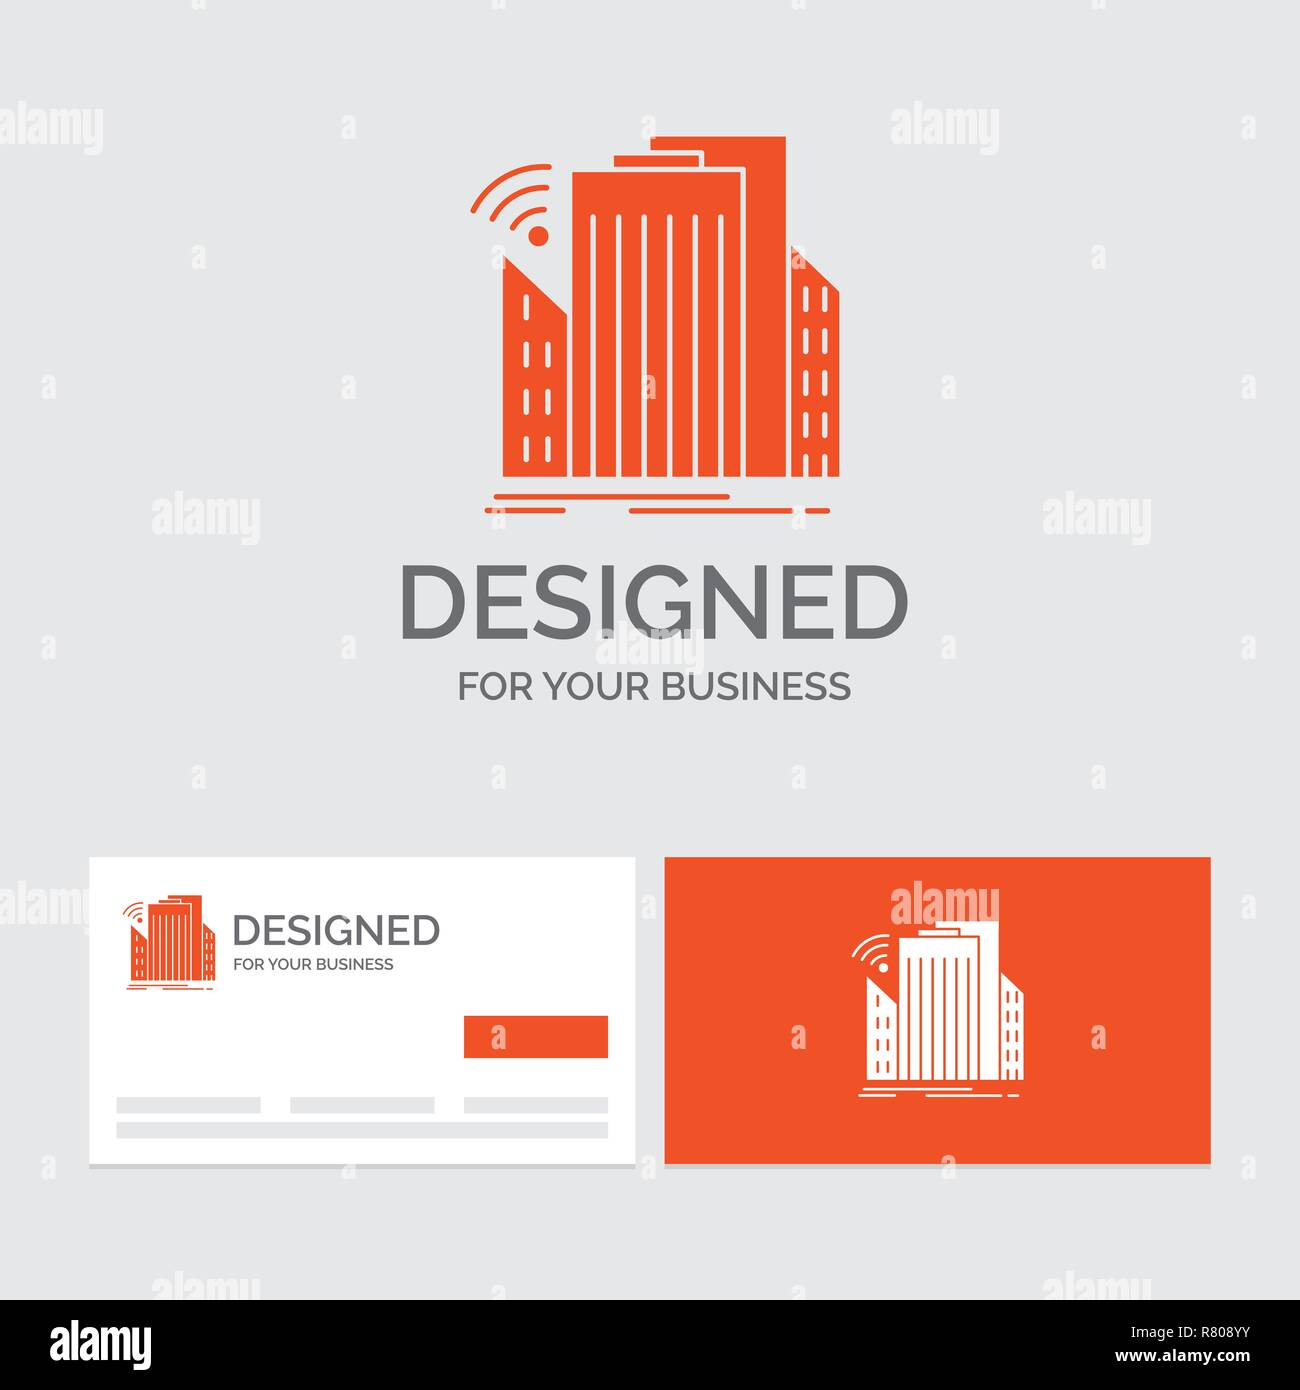 Business logo template for Buildings, city, sensor, smart, urban. Orange Visiting Cards with Brand logo template. - Stock Vector